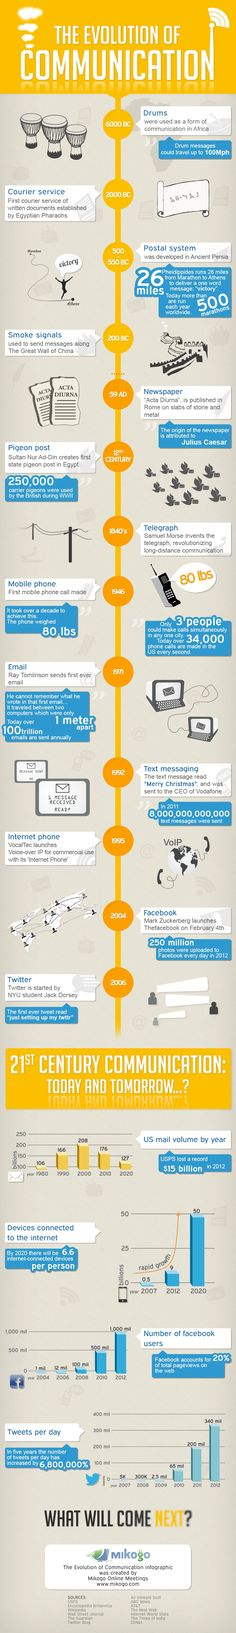 The evolution of #communication: drums and pigeons through Twitter and smartphones. #infographic